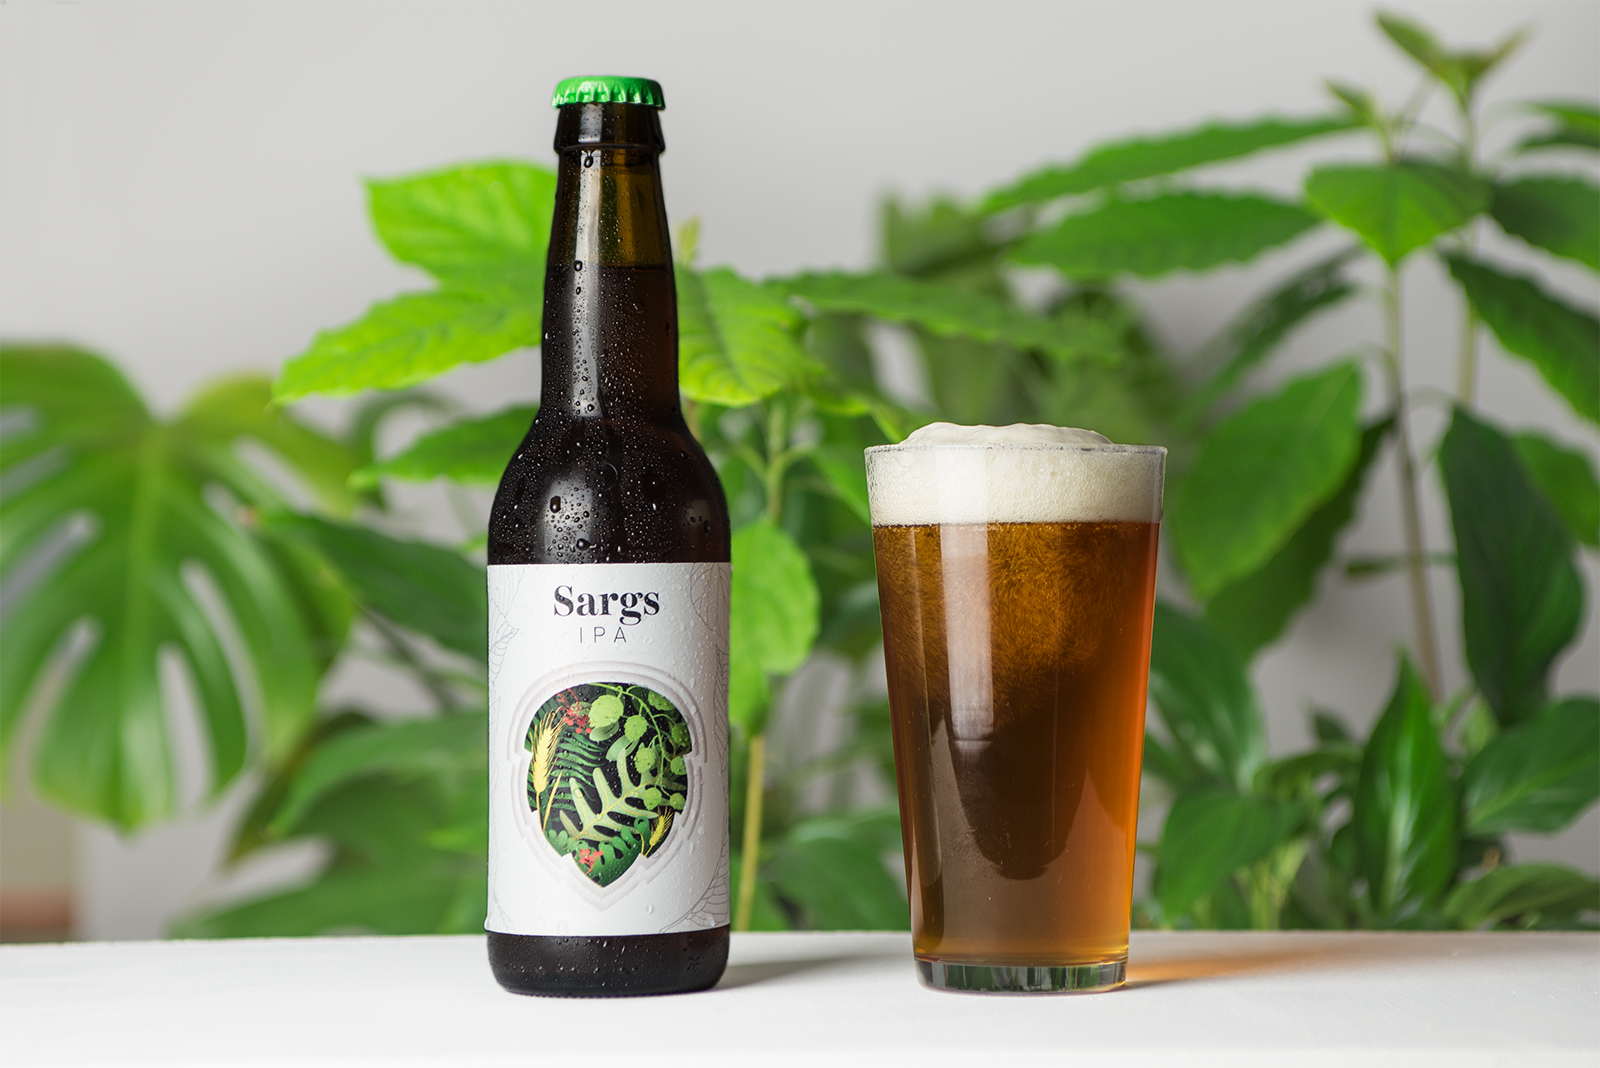 Vibrant Botanical Cut Paper Illustrations Handcrafted for Sargs IPA Beer